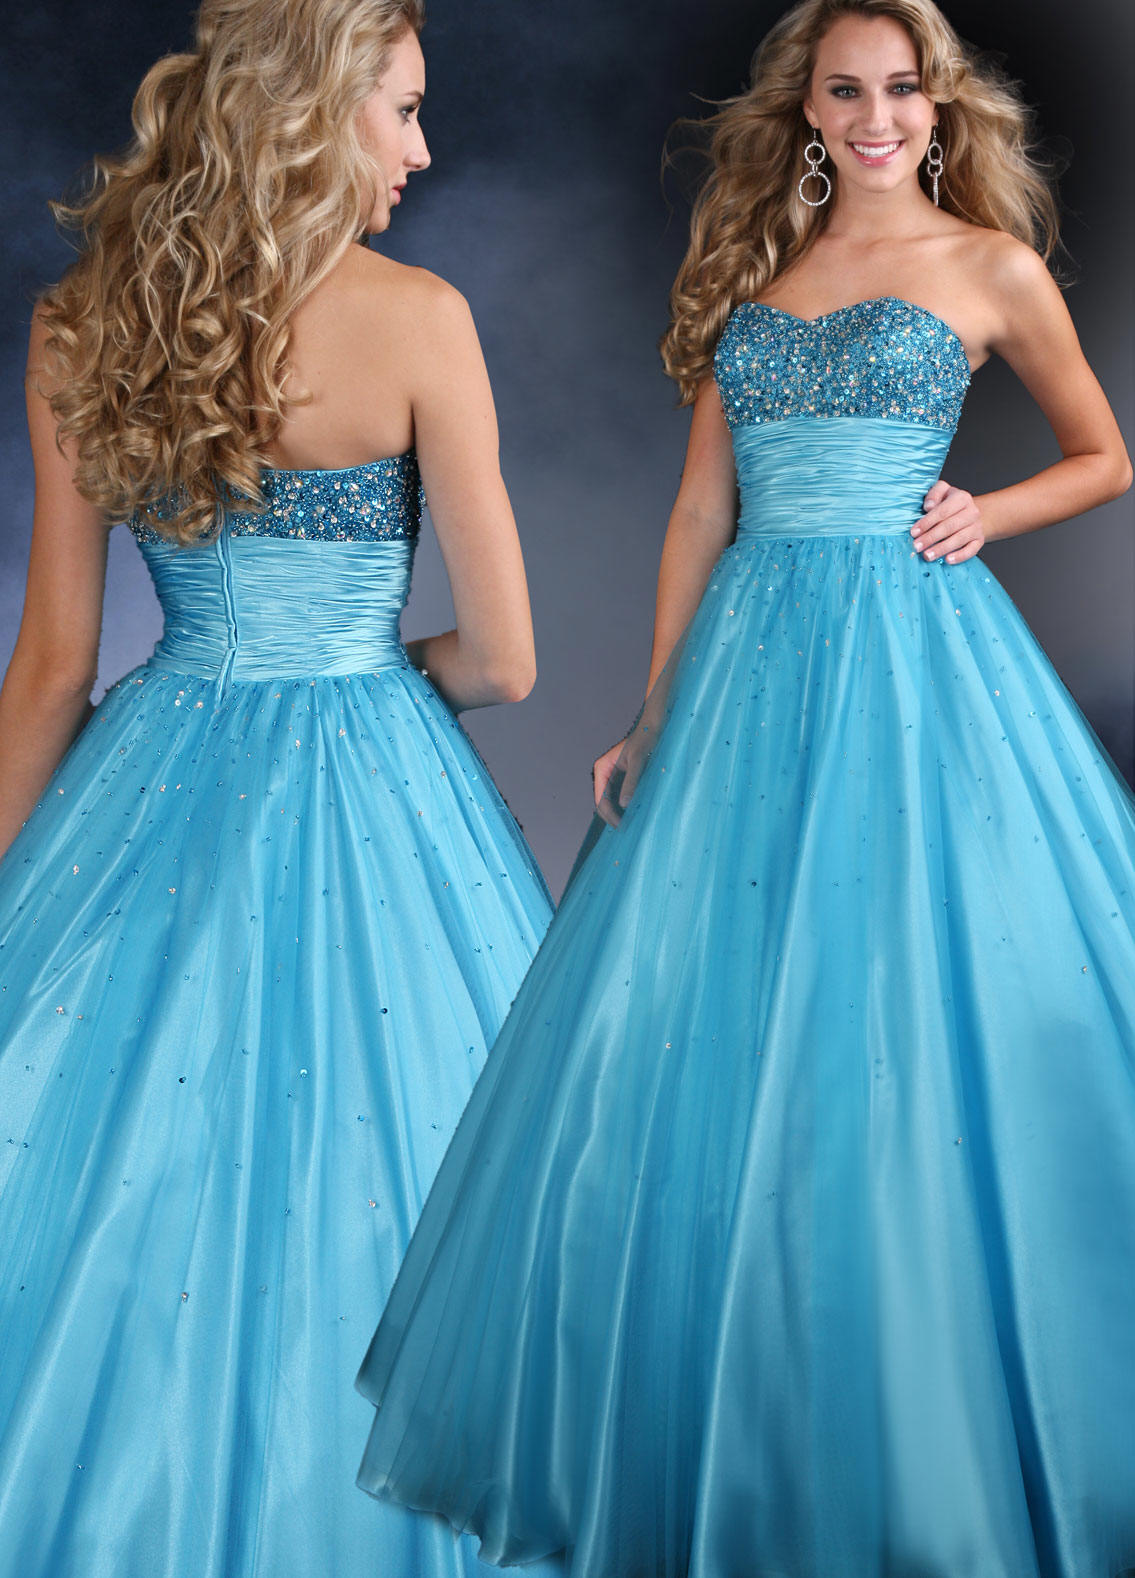 Junior Pageant Dresses - Young girls dresses.